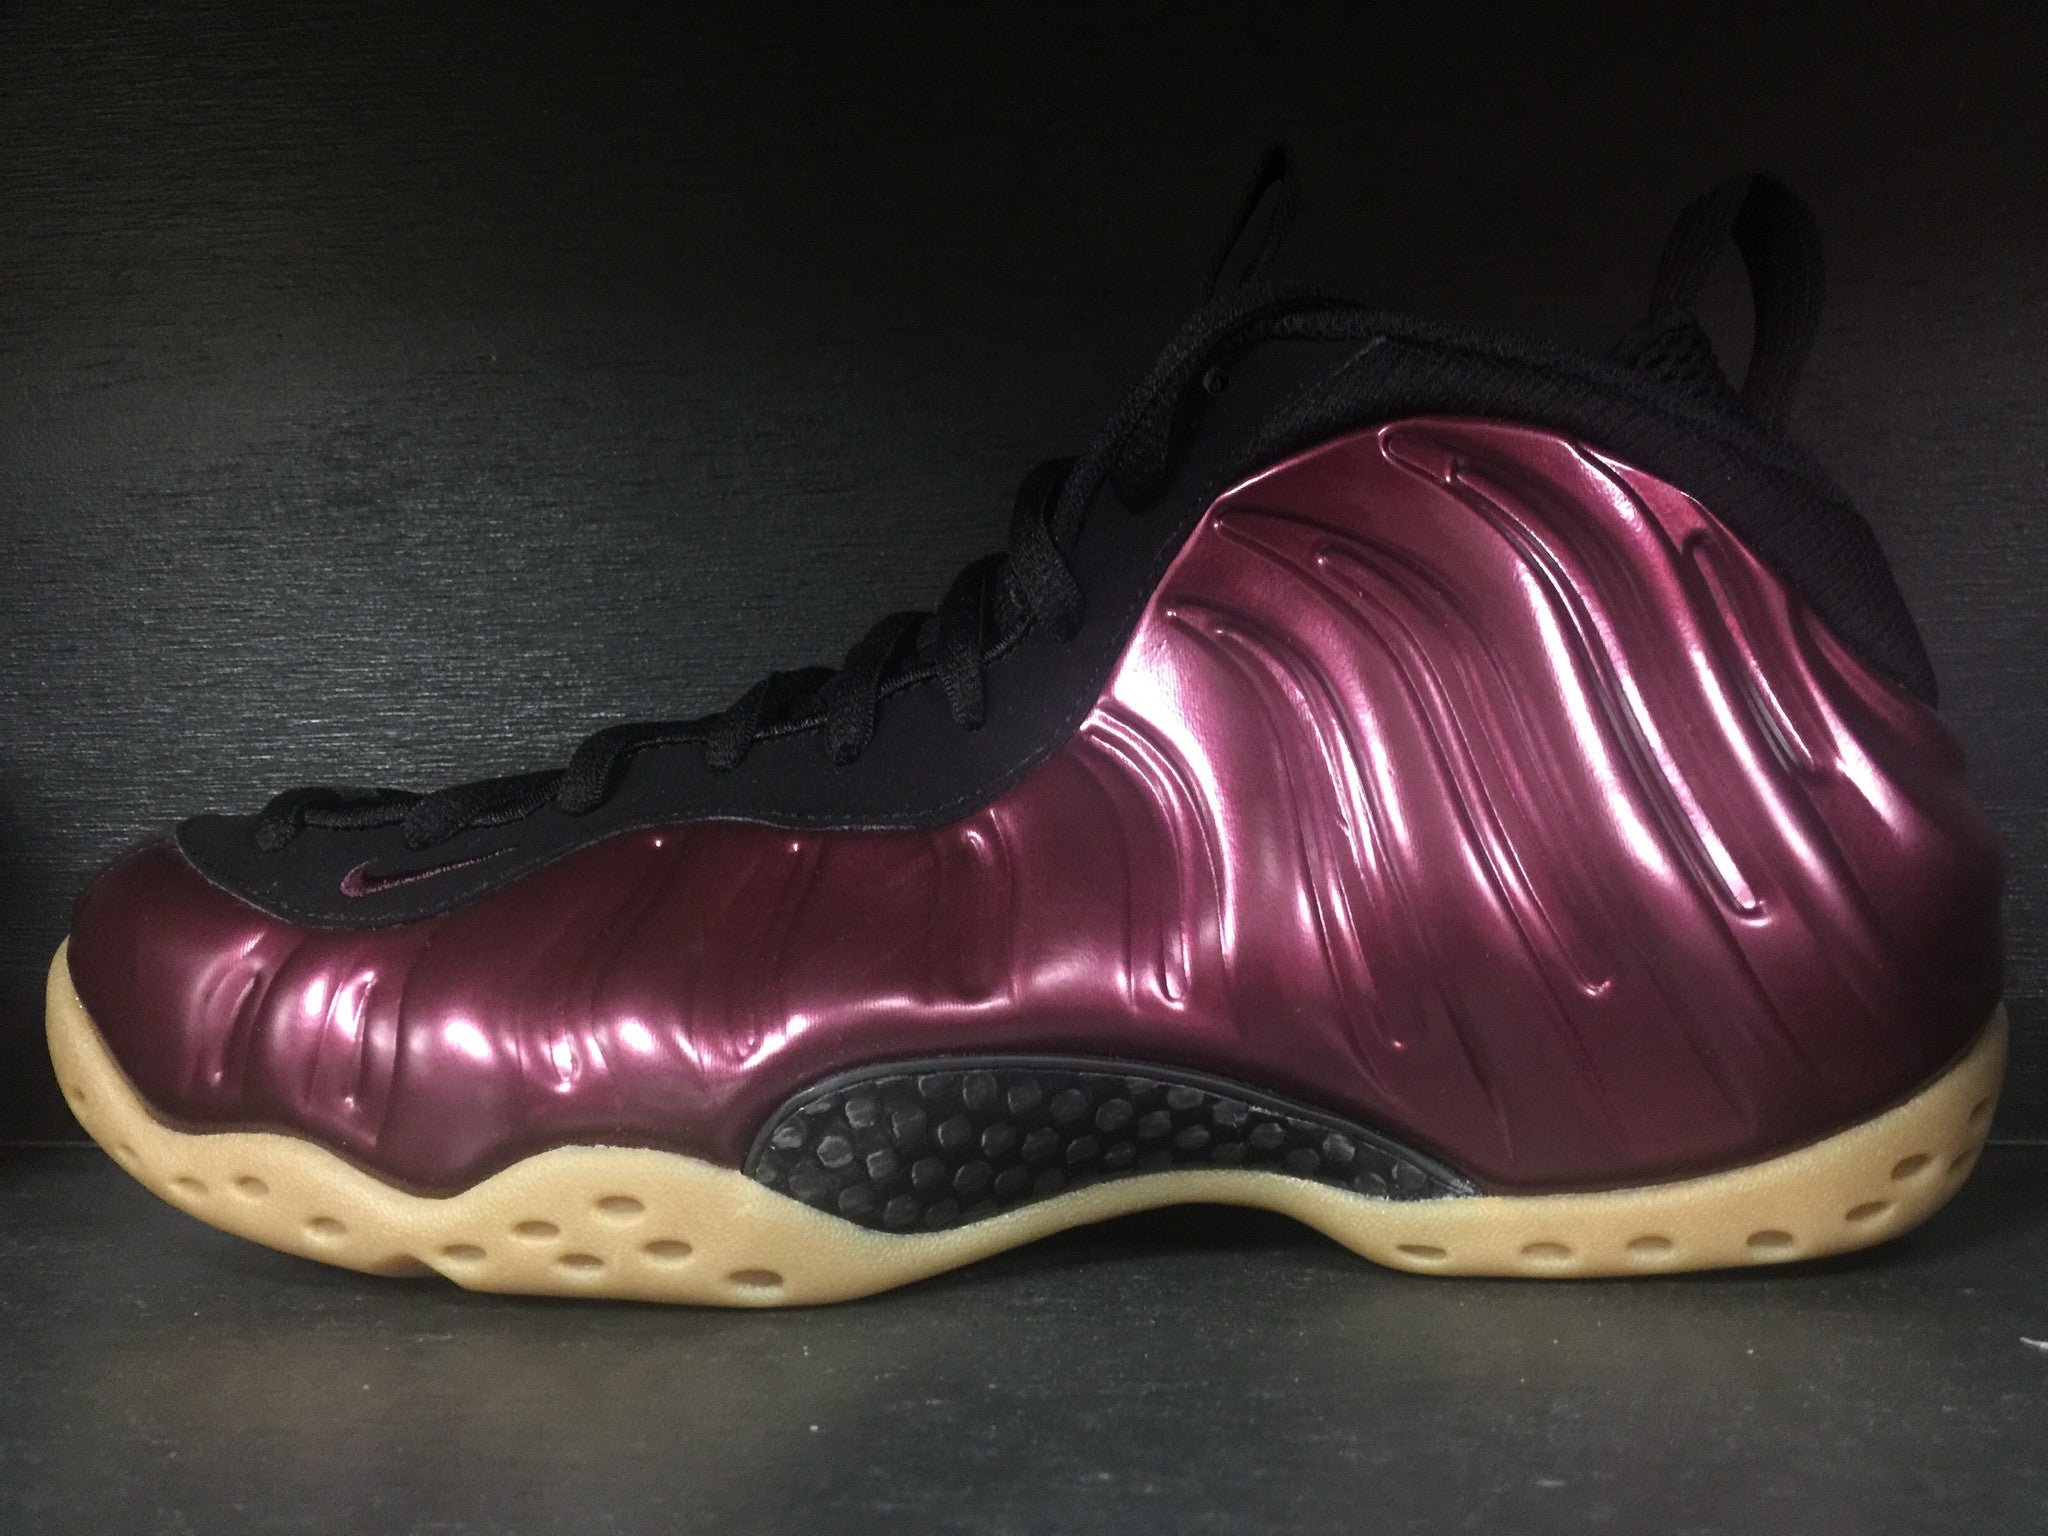 Nike Air Foamposite One 'Maroon'